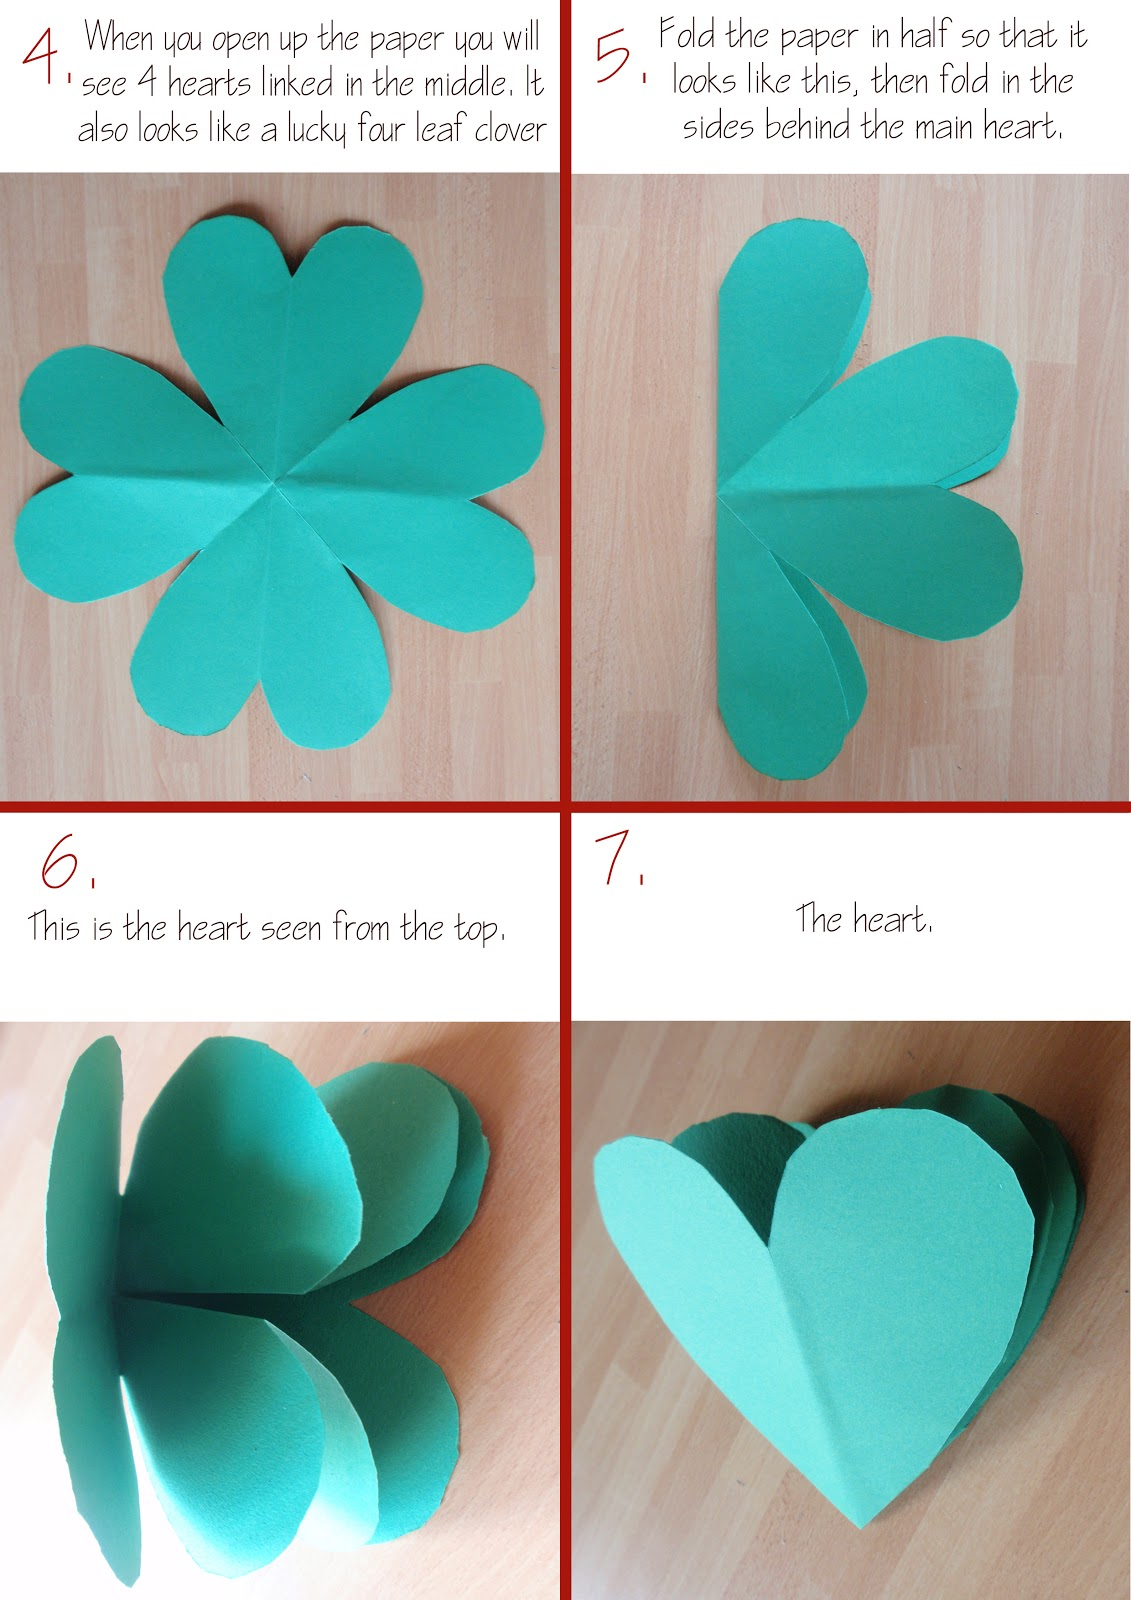 Make Your Own Valentines Wallpaper Crafthubs – Make Your Own Valentines Card for Free